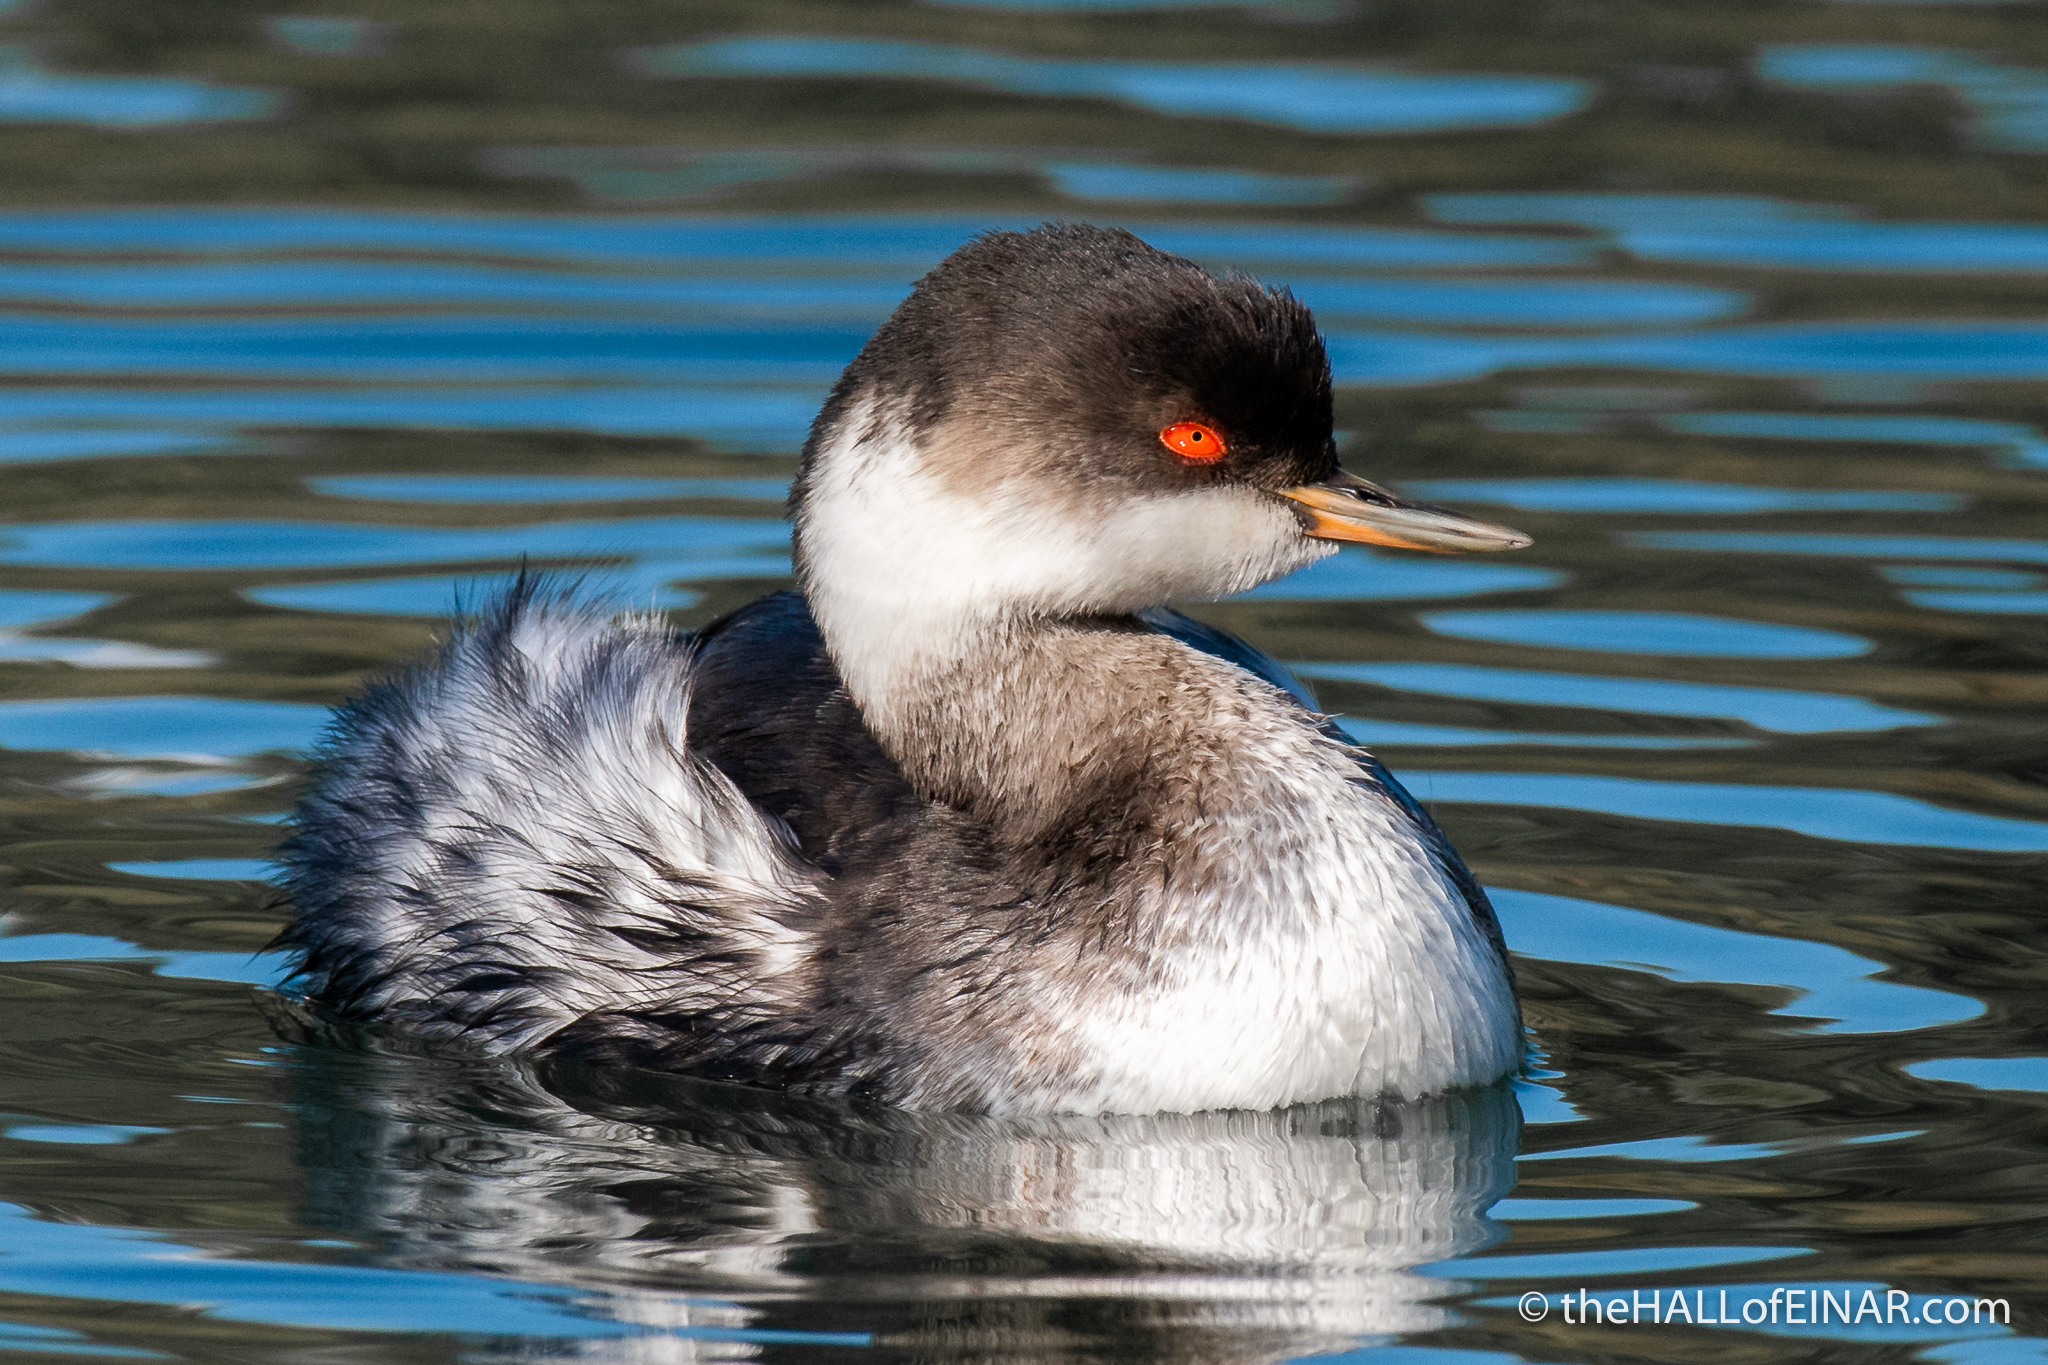 Black Necked Grebe - Orbetello - The Hall of Einar - photograph (c) David Bailey (not the)